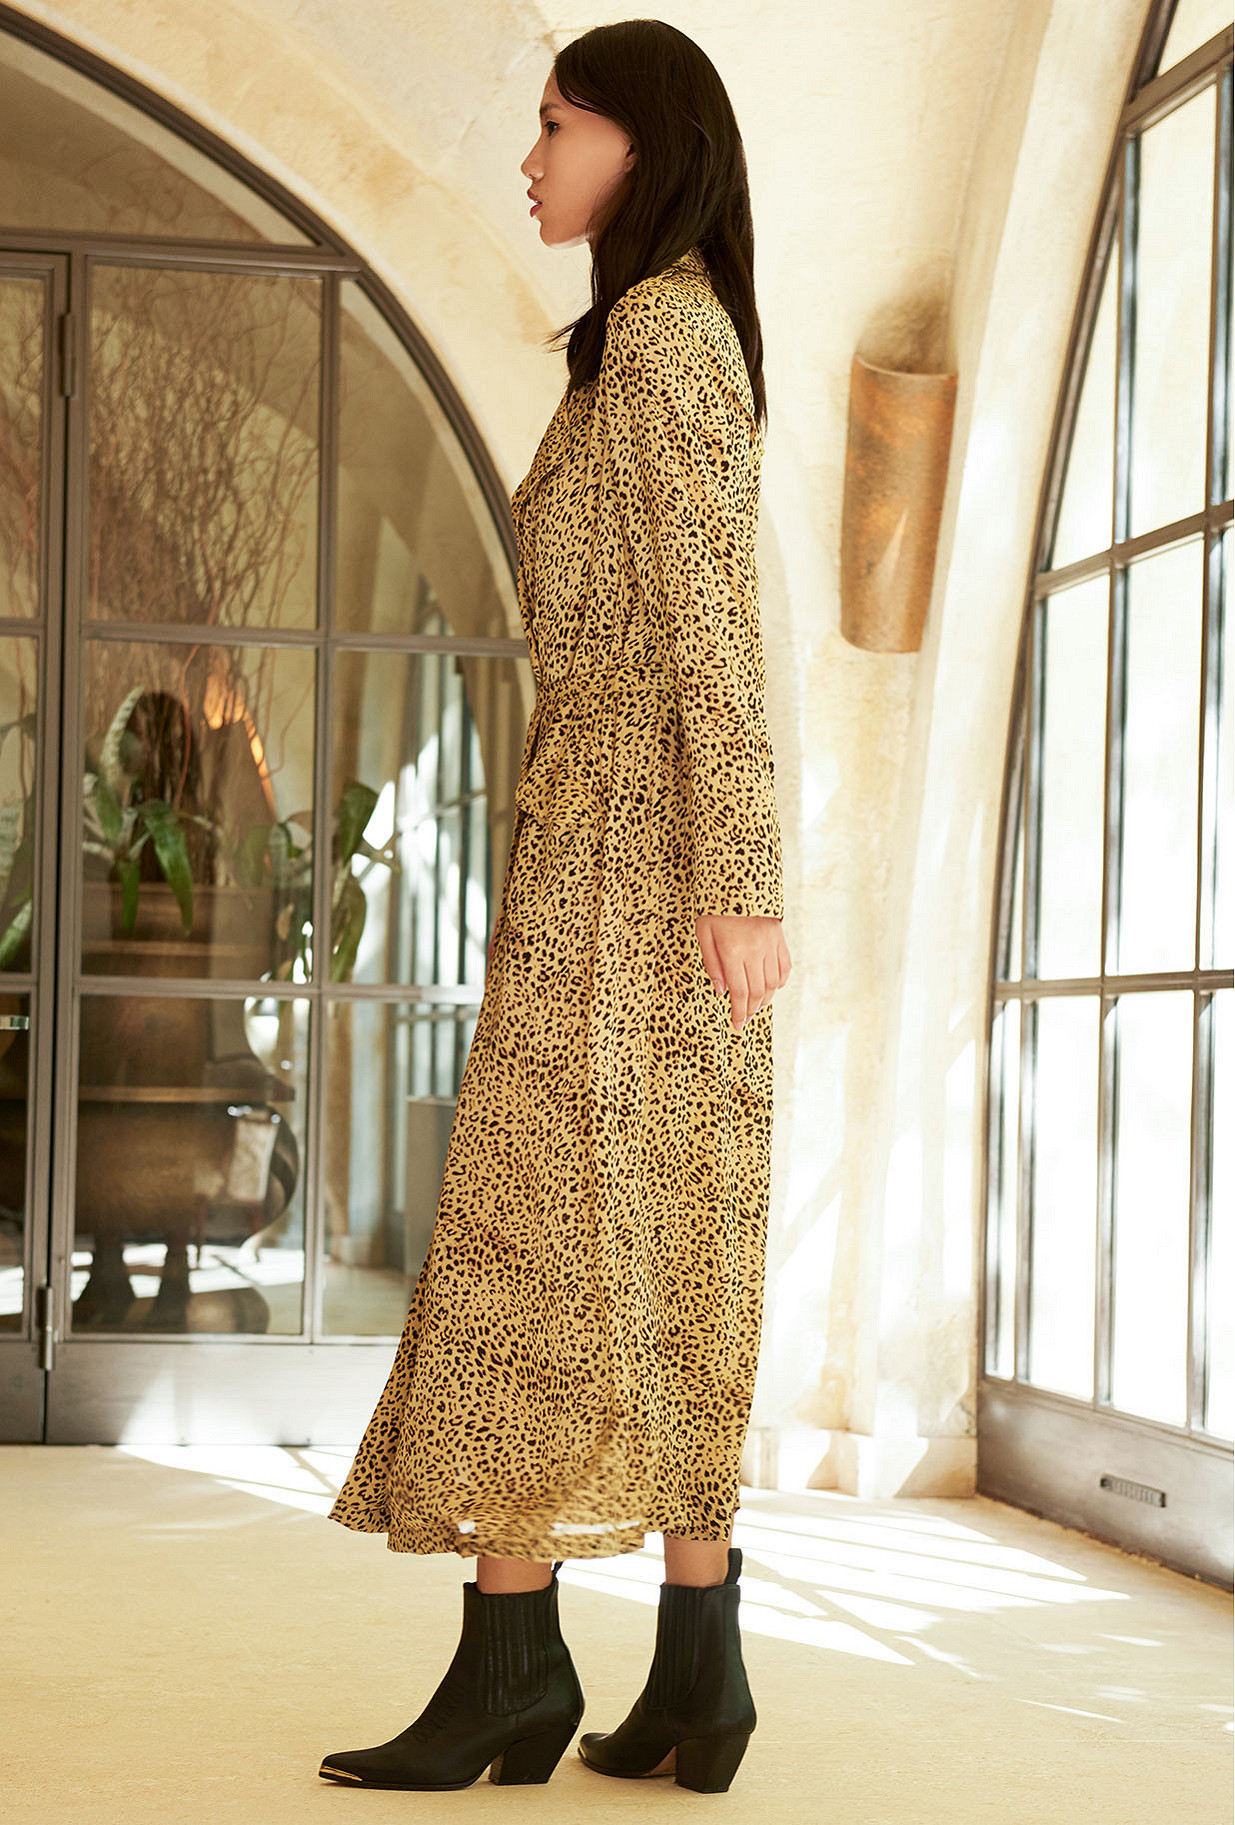 Panther  Coat  Rosita Mes demoiselles fashion clothes designer Paris